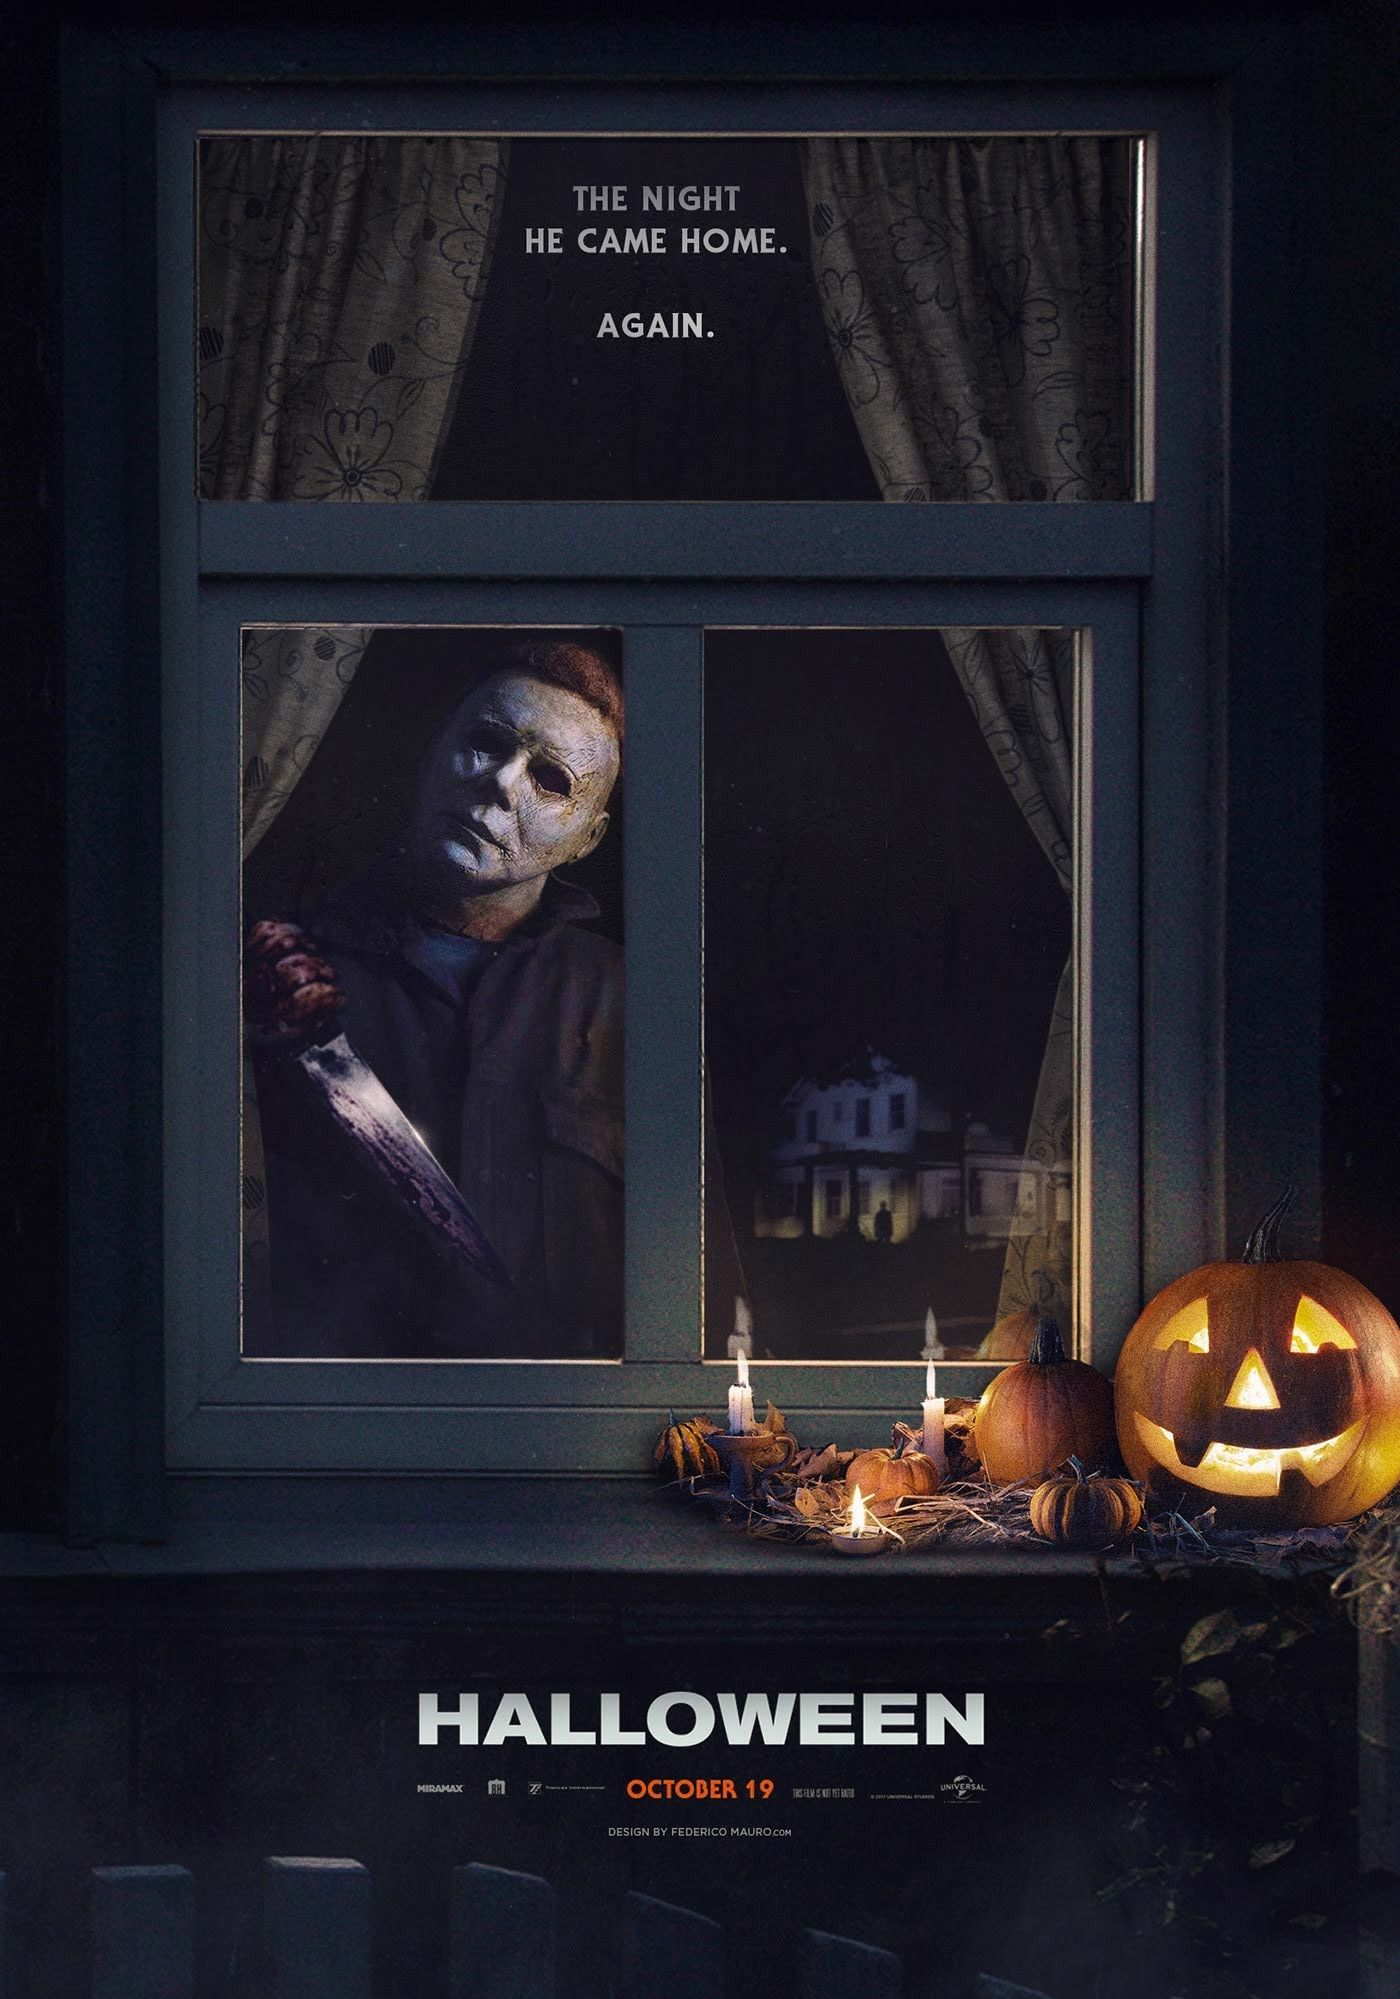 Pin by Caleb on Movies in 2020 Halloween movie poster